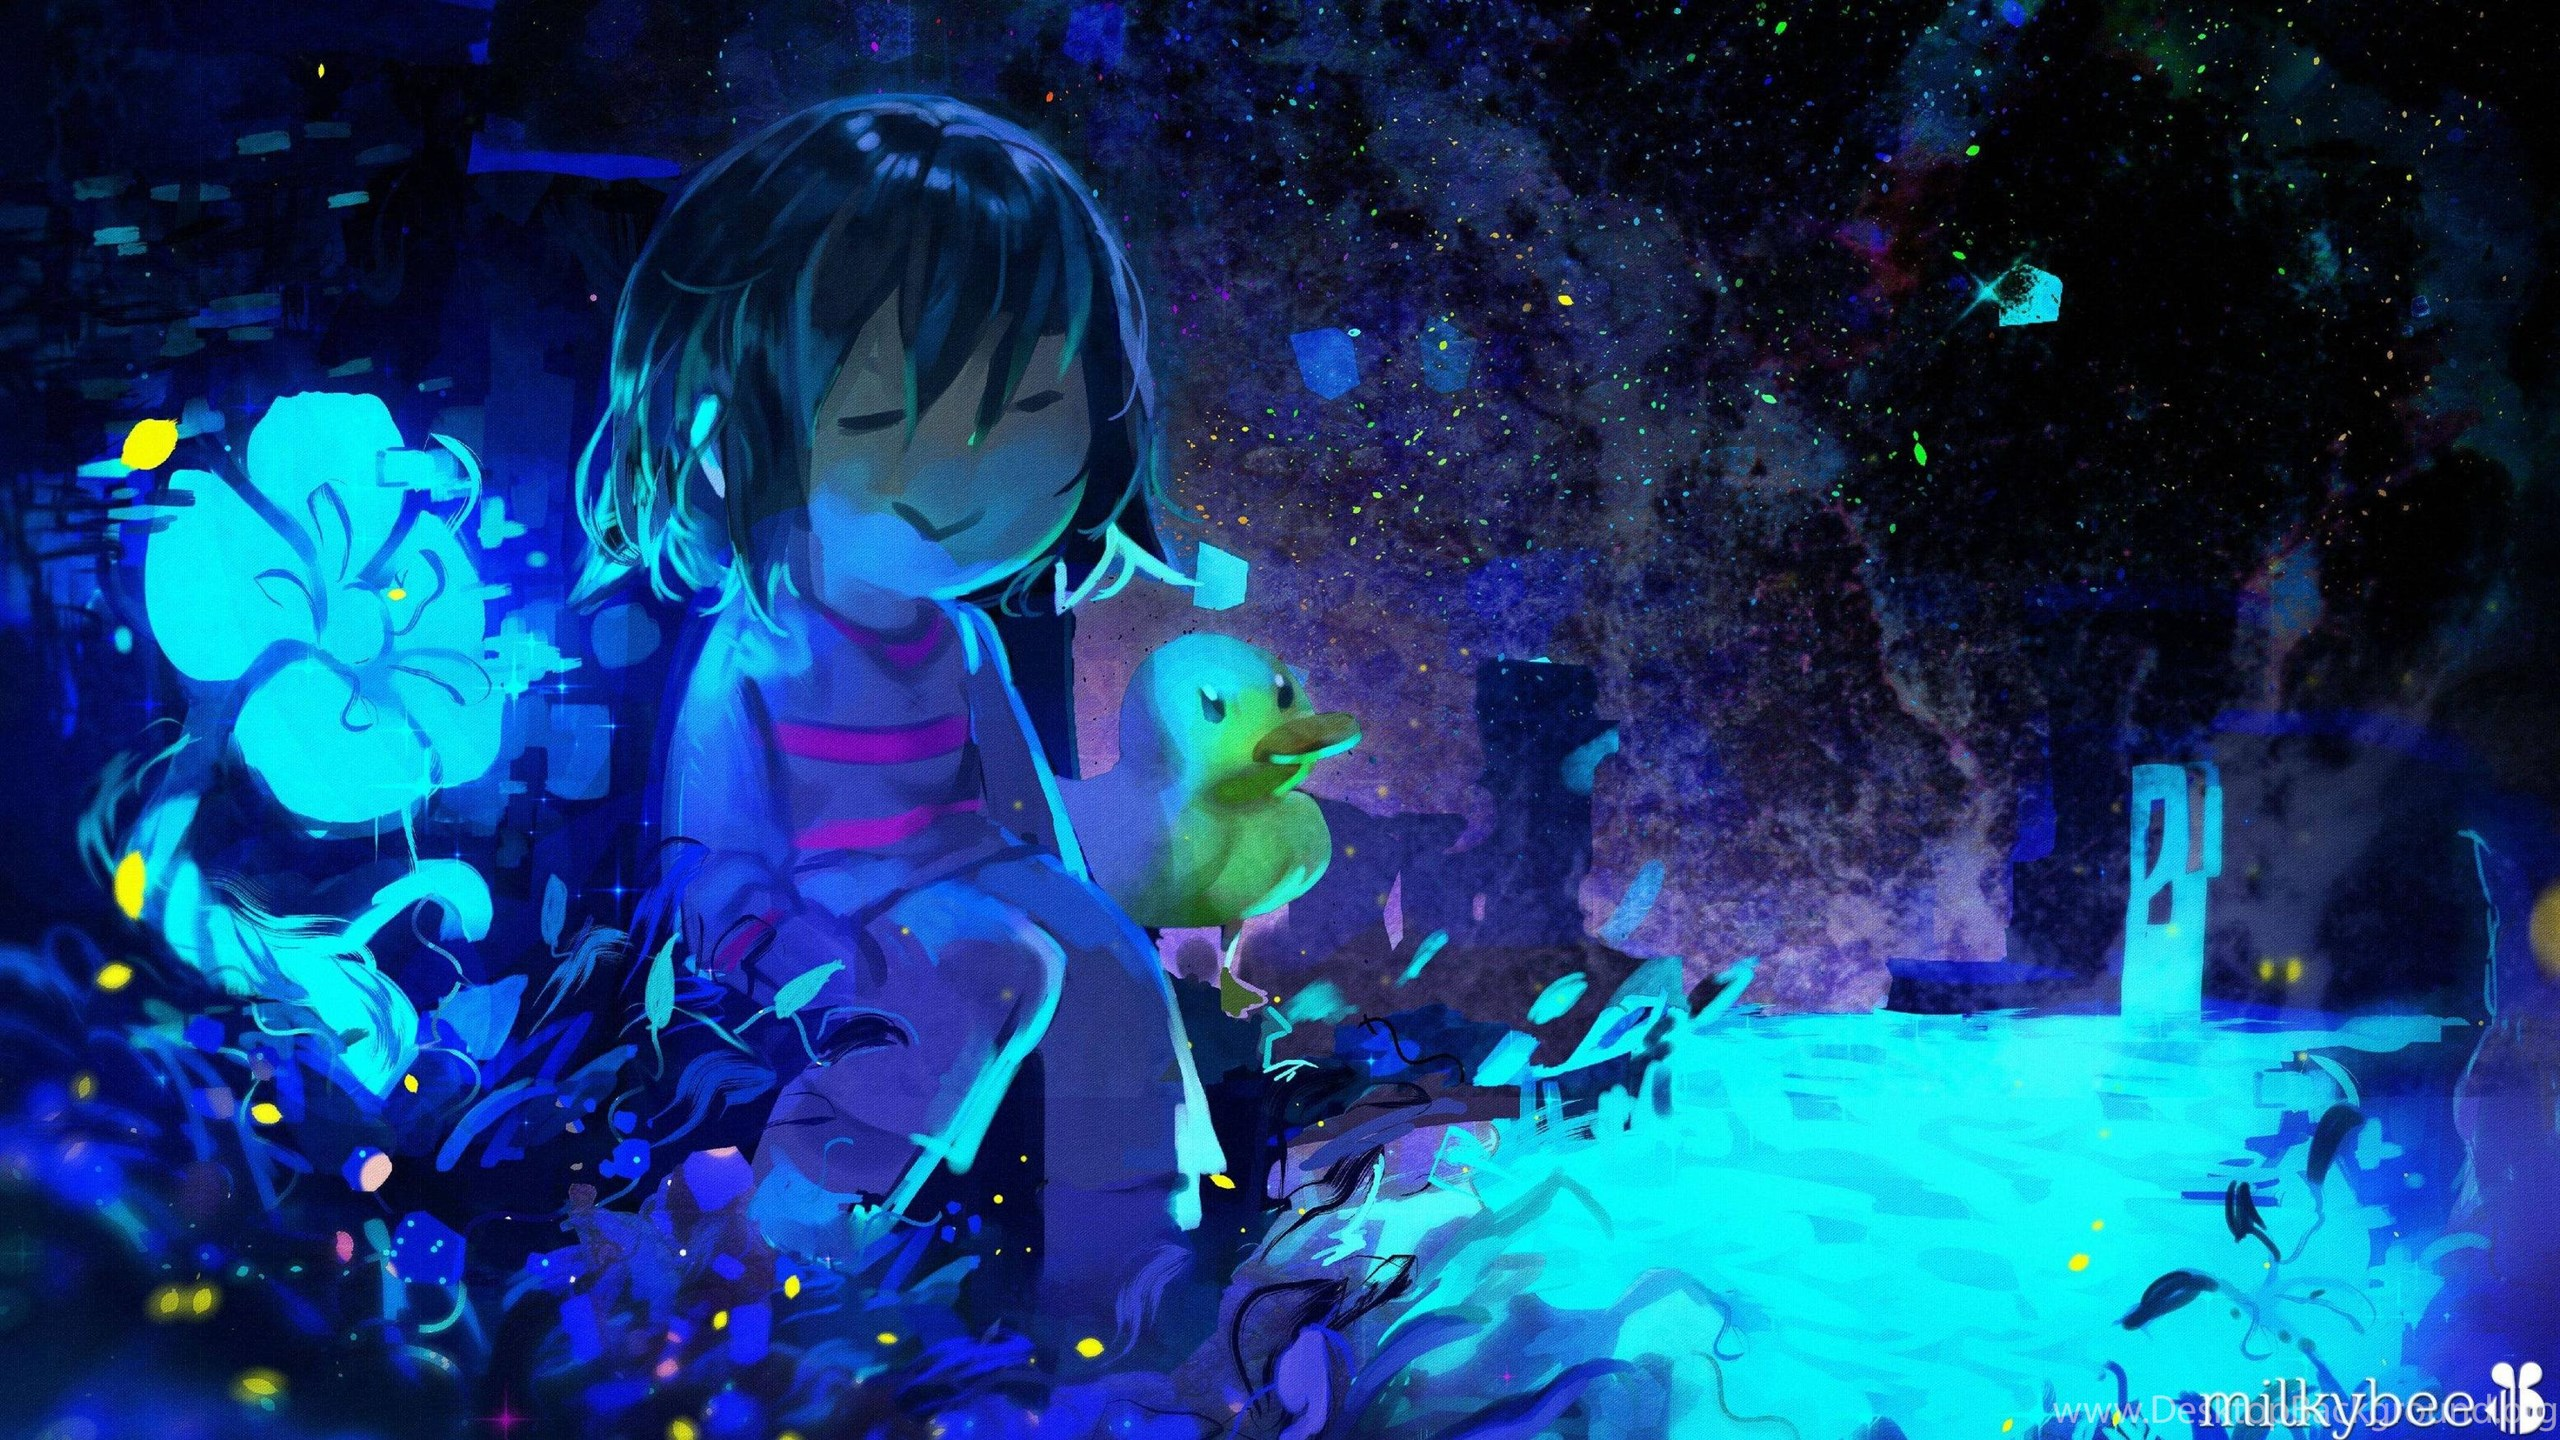 most beautiful undertale wallpapers desktop background